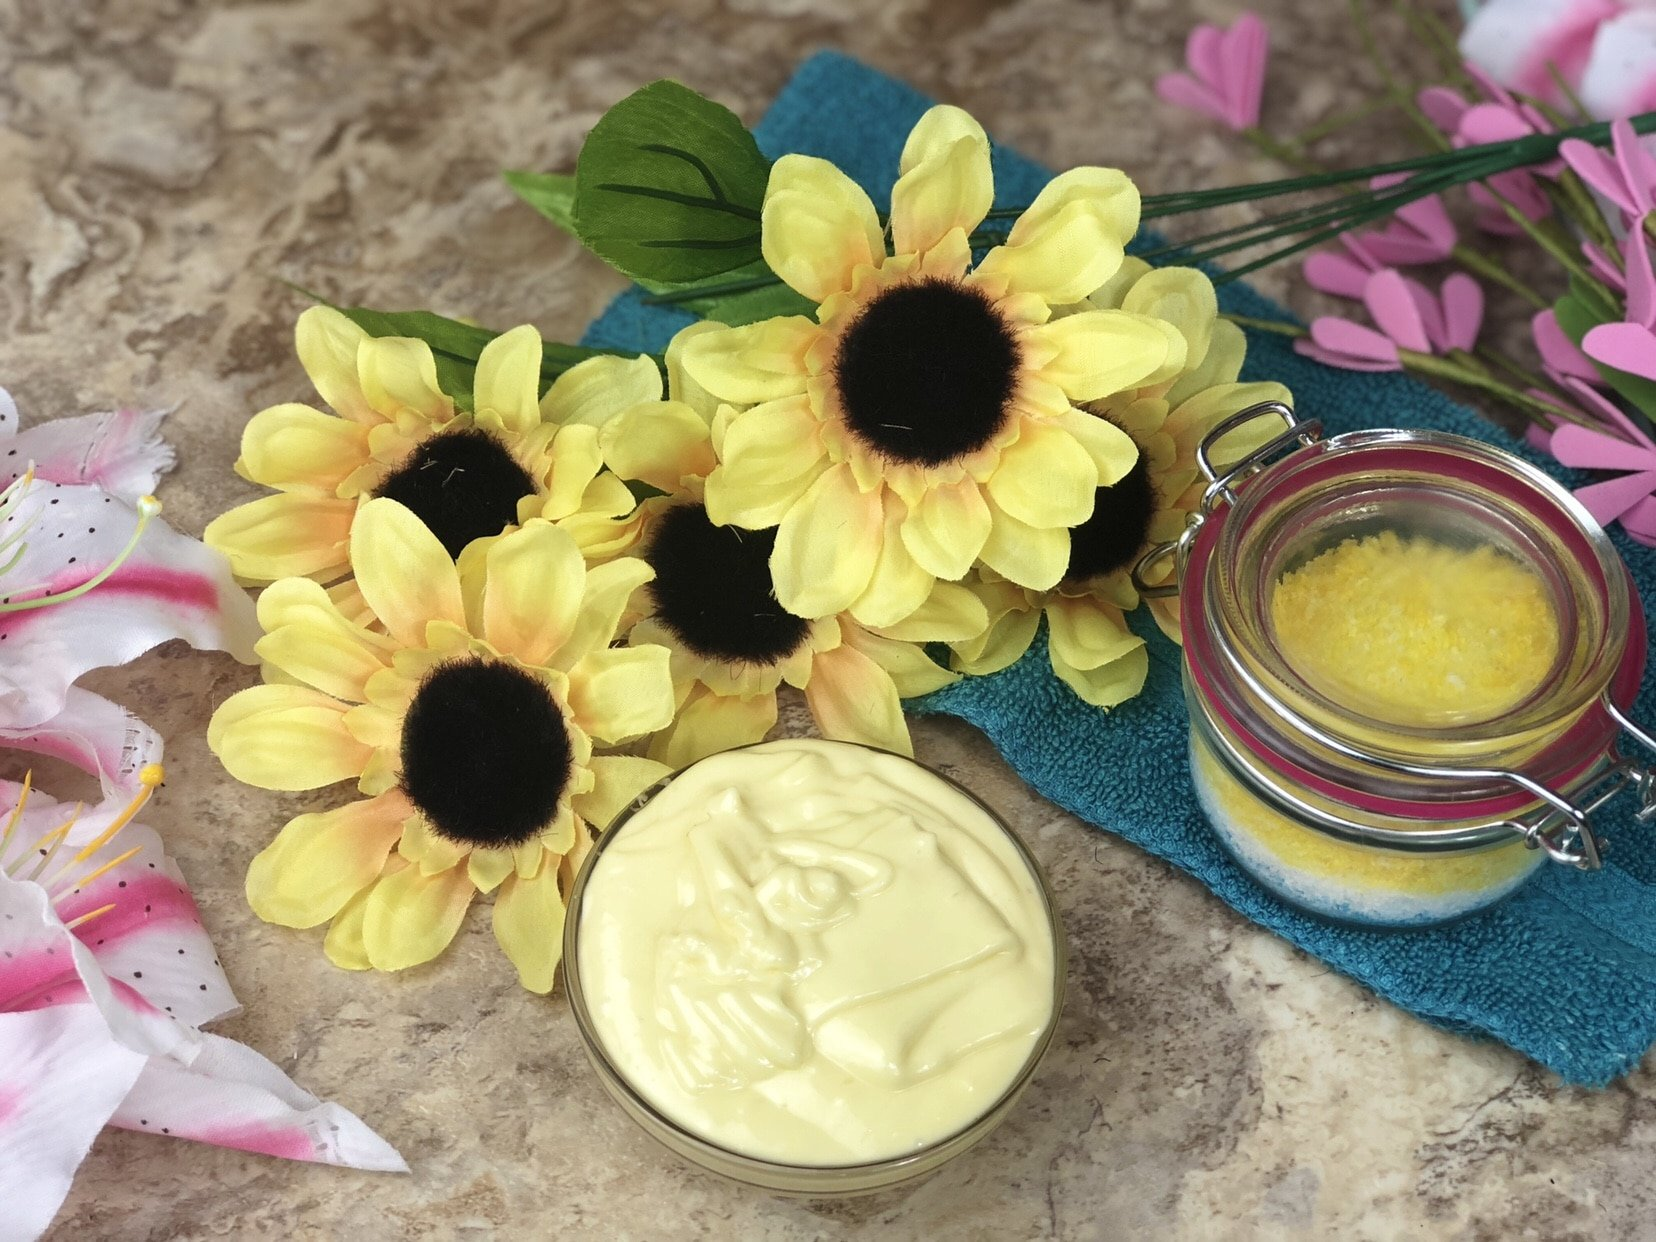 Curl Cream in a small bowl with yellowflowers and salt scrub on a blue towel.